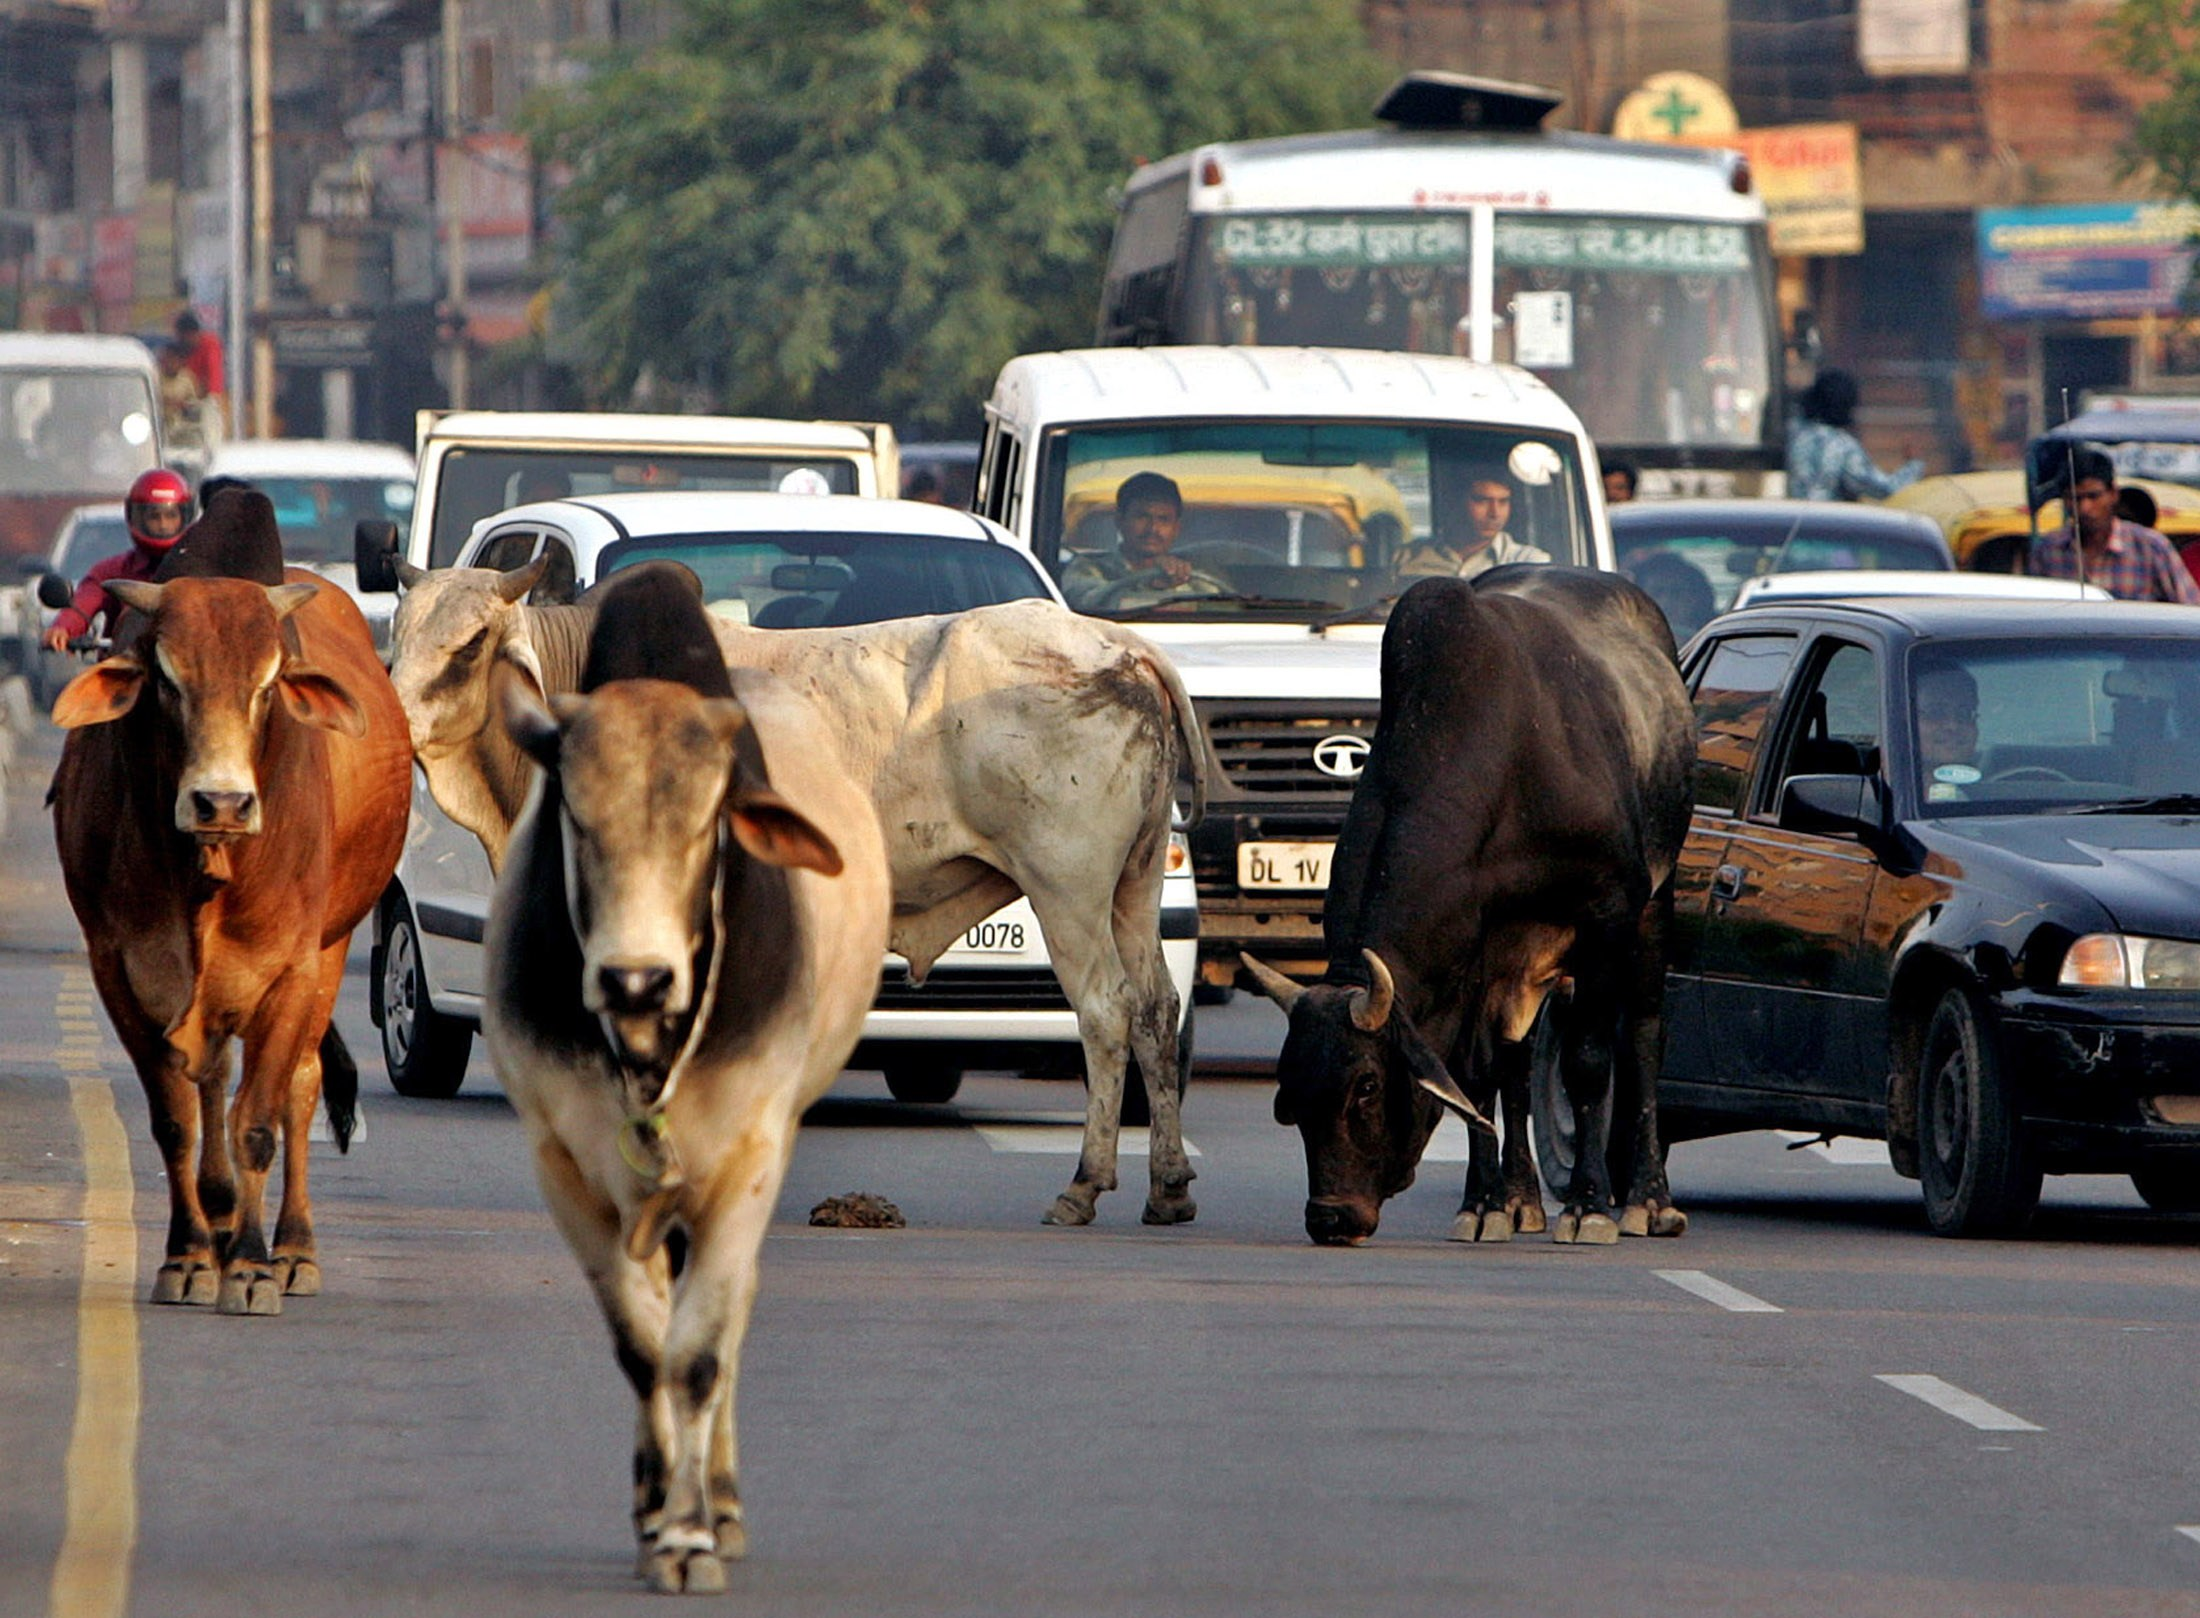 Laws Prohibiting Cow Slaughter Are Creating Both Vigilantes and Victims